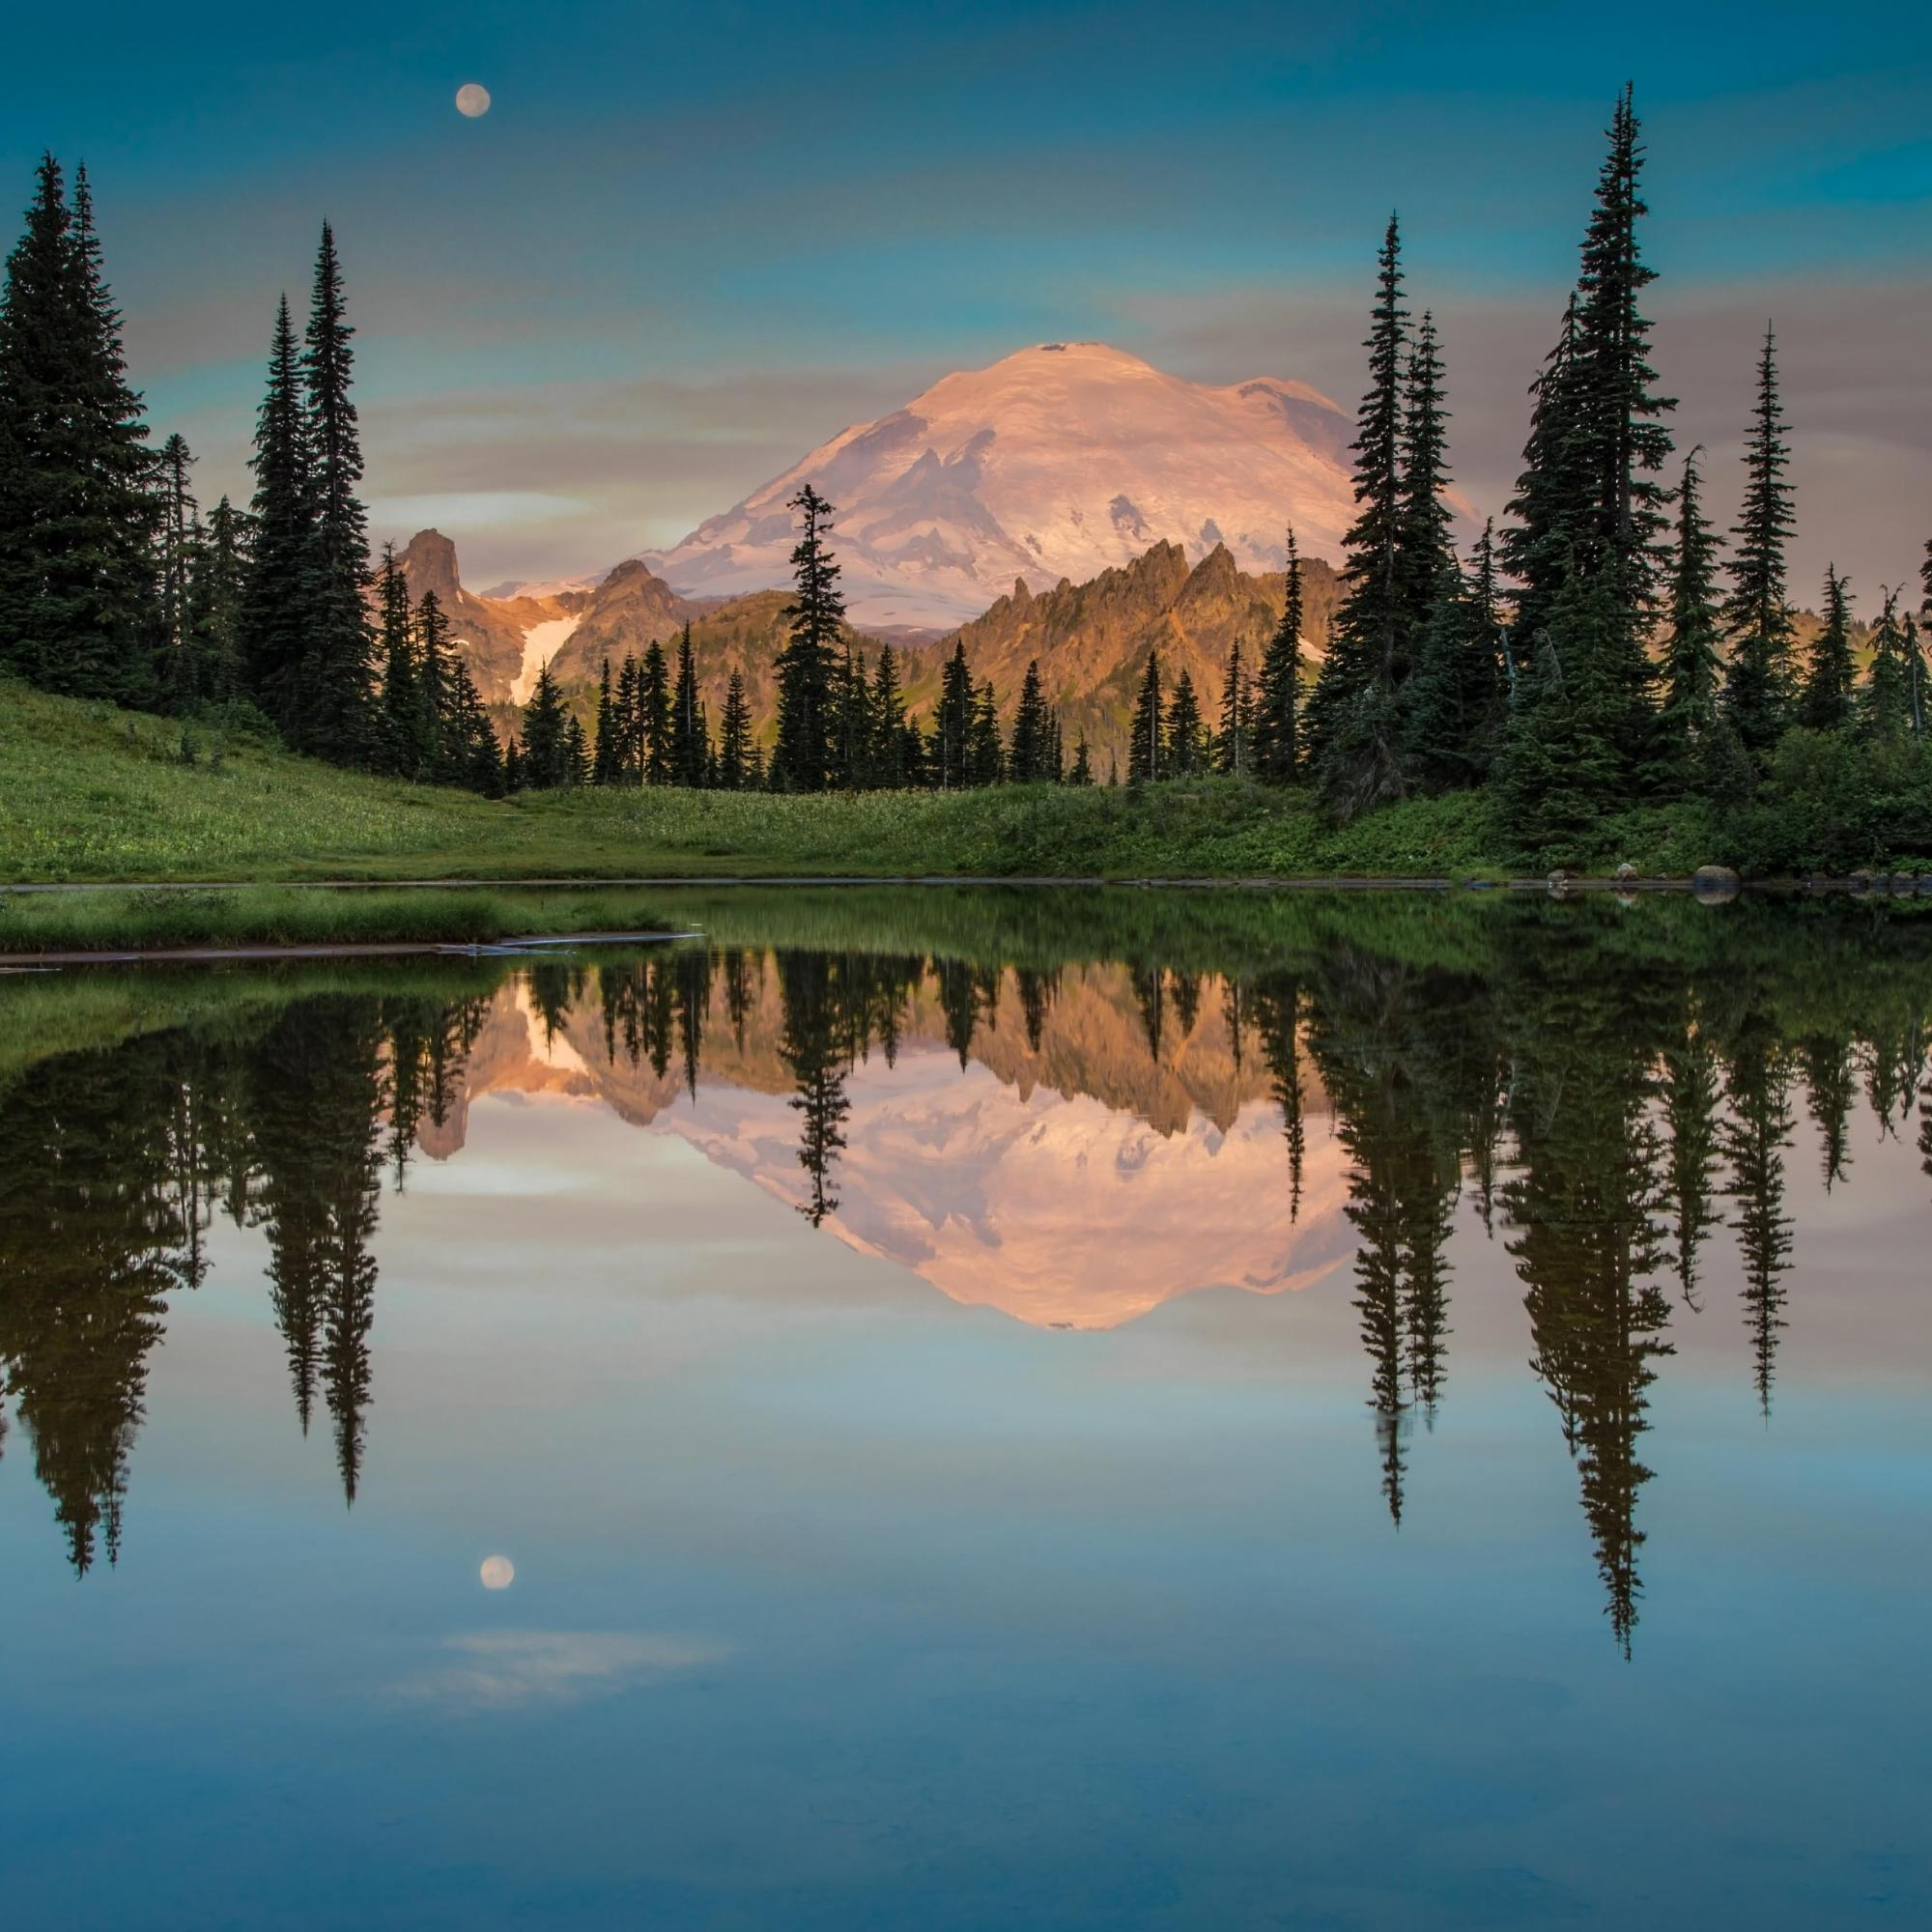 Tipsoo Lake, Washington State